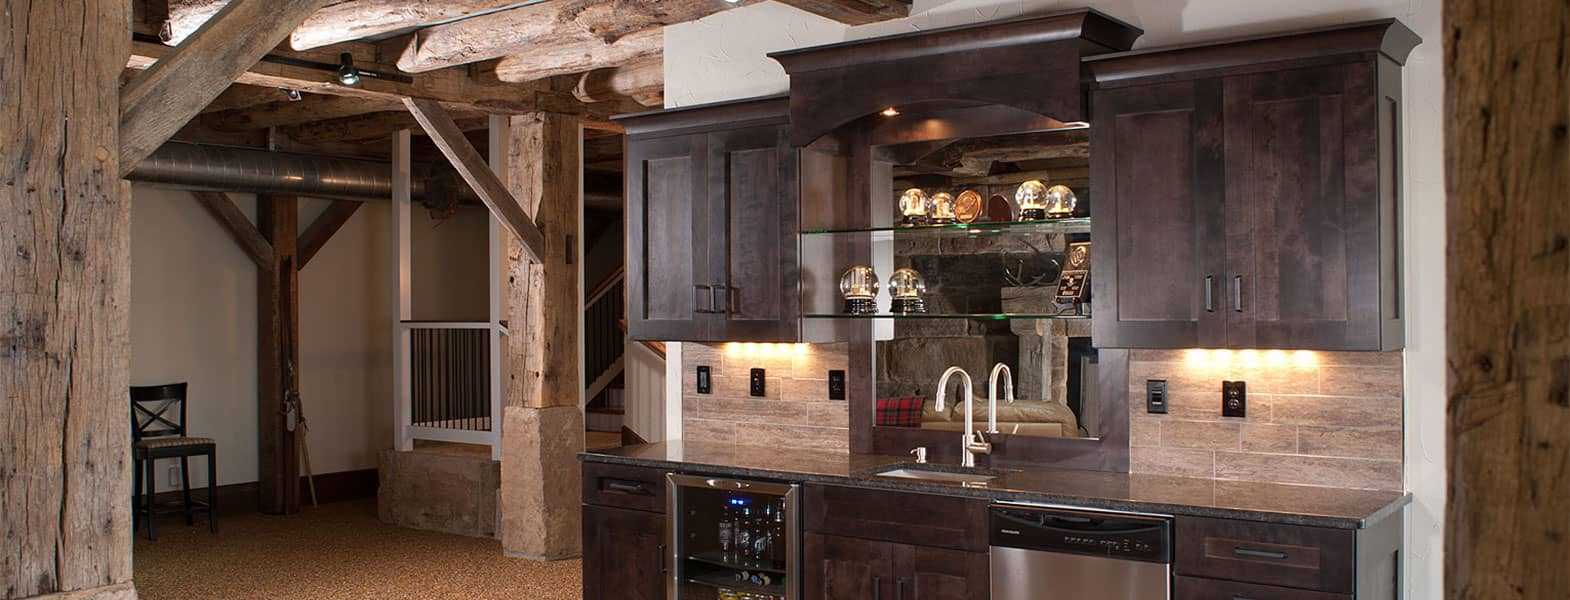 Canton Home Builder, Custom Home Builder and Home Remodeling Contractor